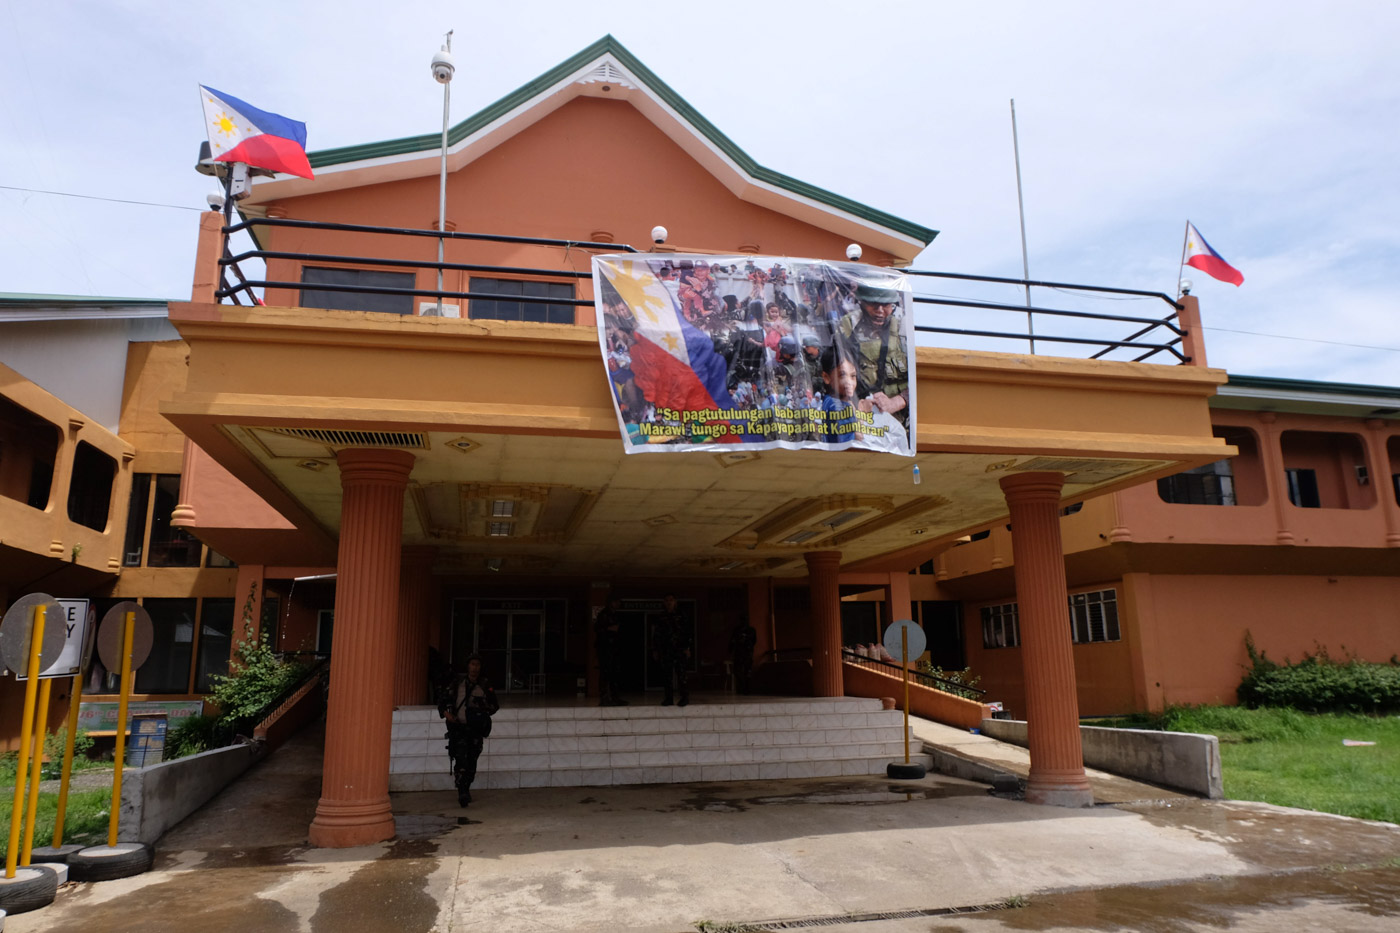 CITY HALL. Marawi Mayor Majul Gandamra and his men repelled the armed groups that wanted to take over City Hall